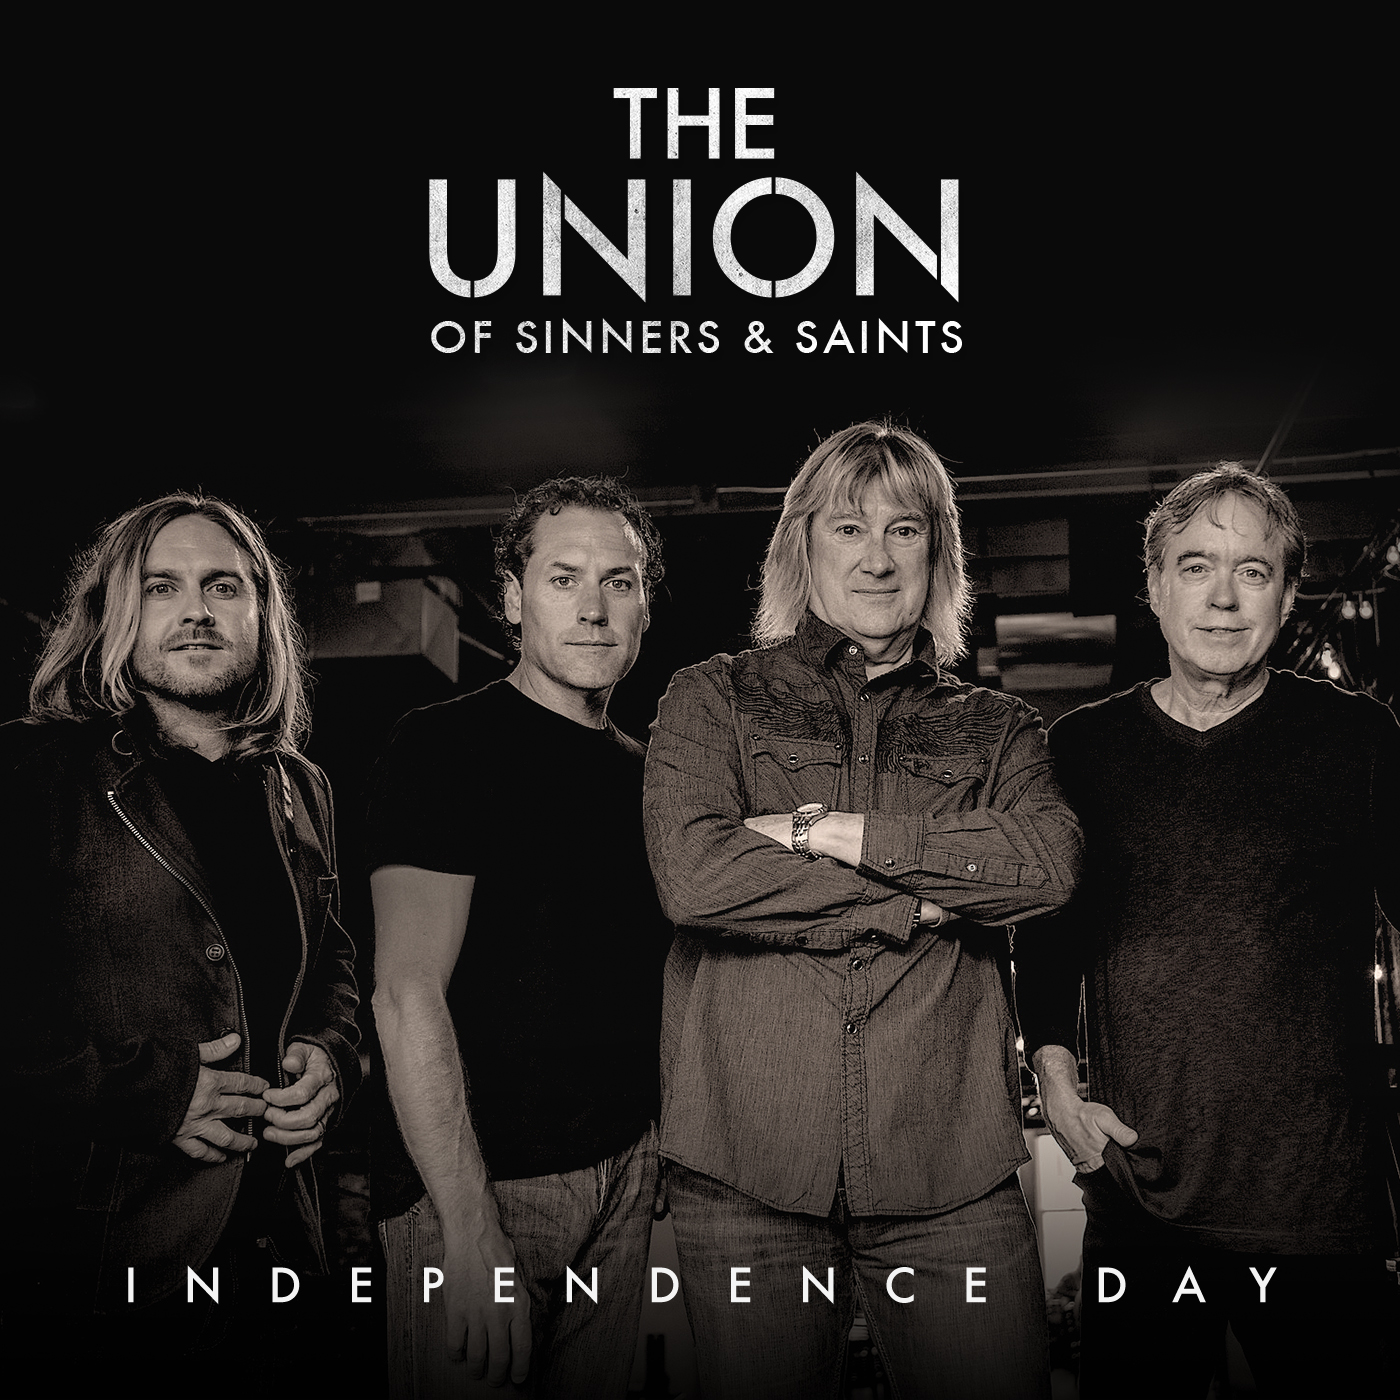 THE UNION OF SINNERS AND SAINTS RELEASES 'INDEPENDENCE DAY'